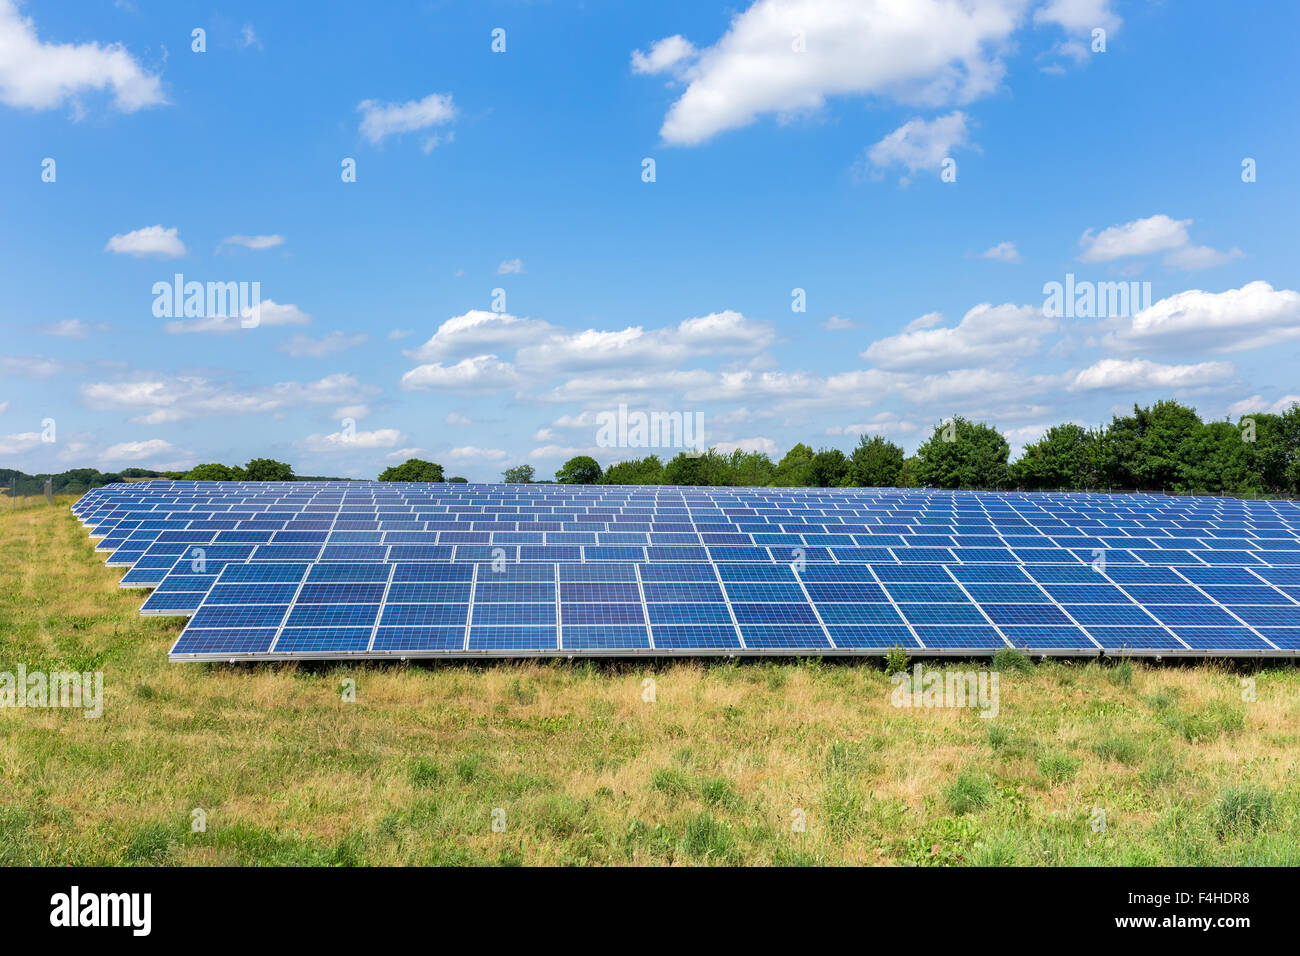 Field with lots of solar panels in the Netherlands - Stock Image